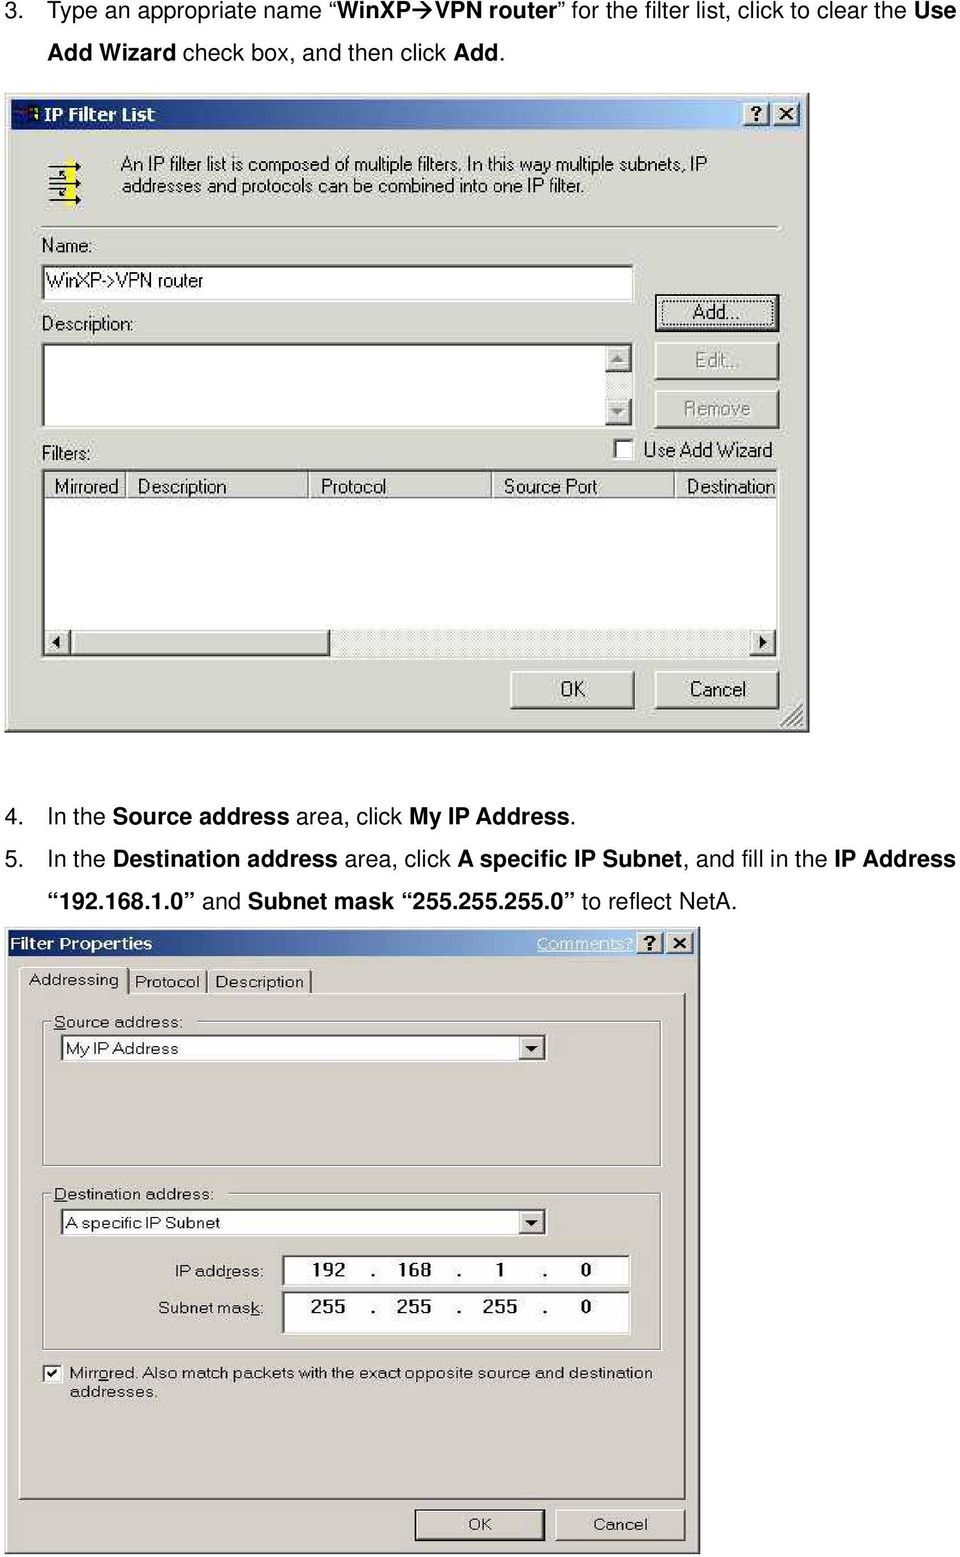 In the Source address area, click My IP Address. 5.